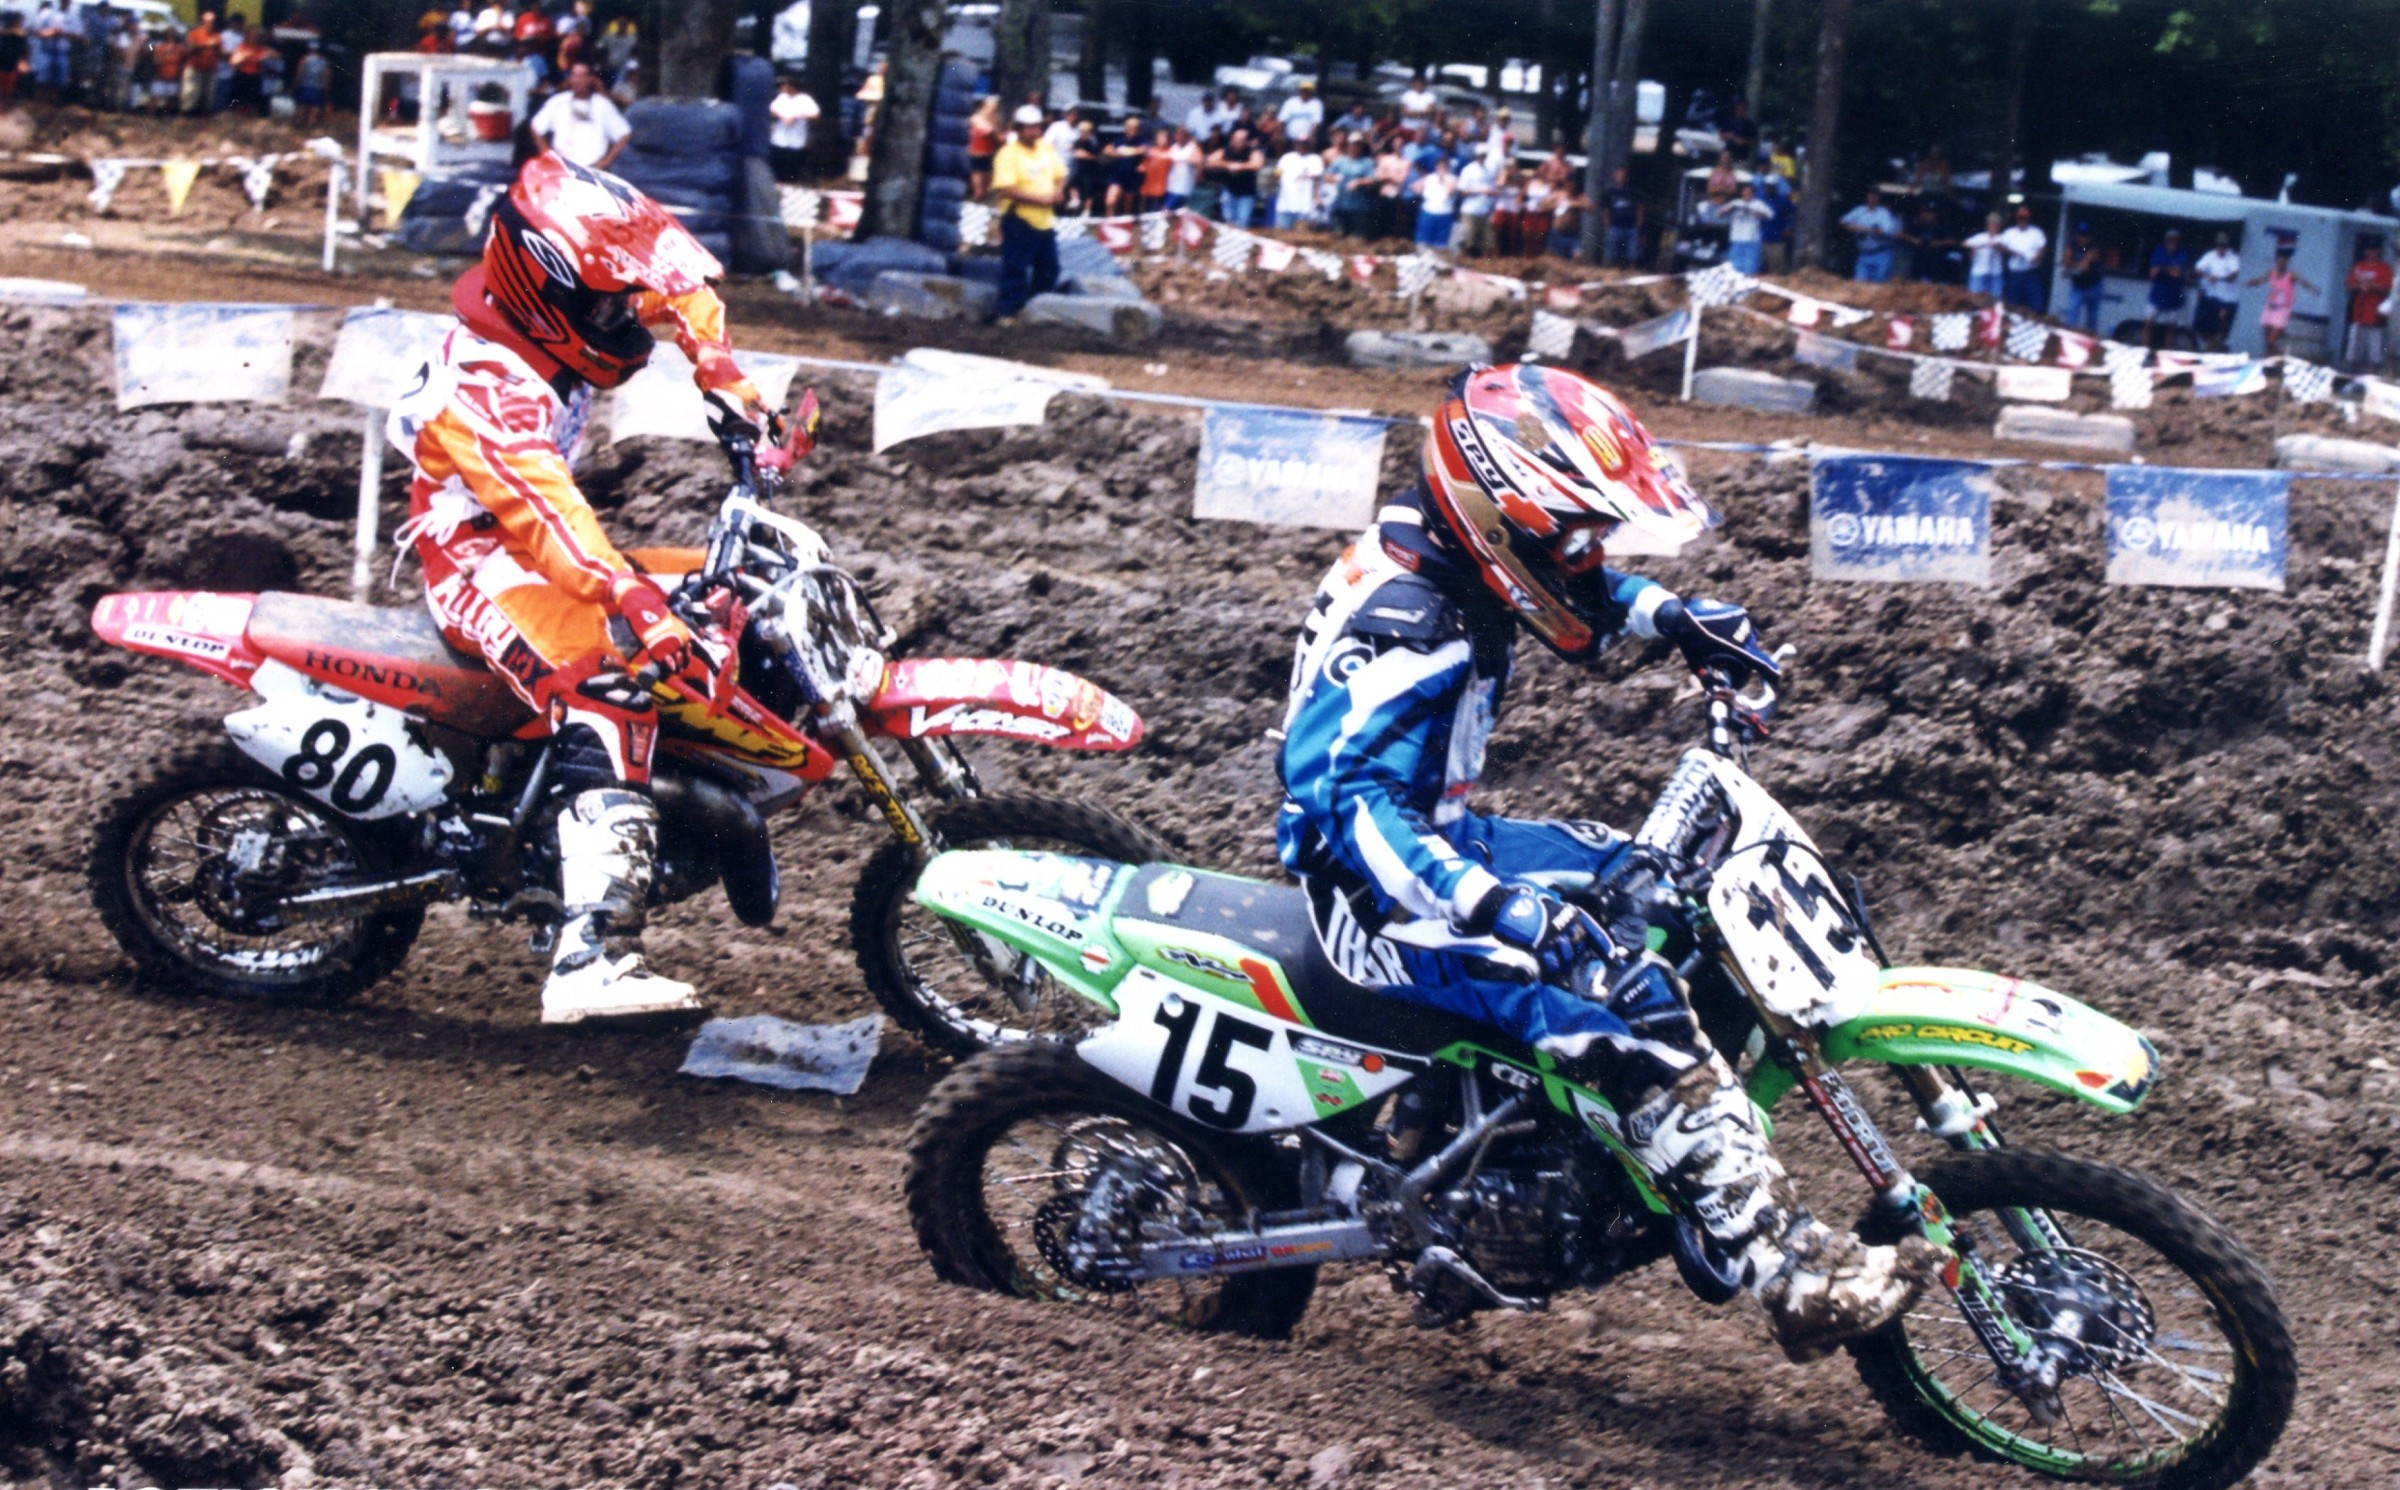 One of the many Alessi (#80) versus Villopoto (#15)  battles.